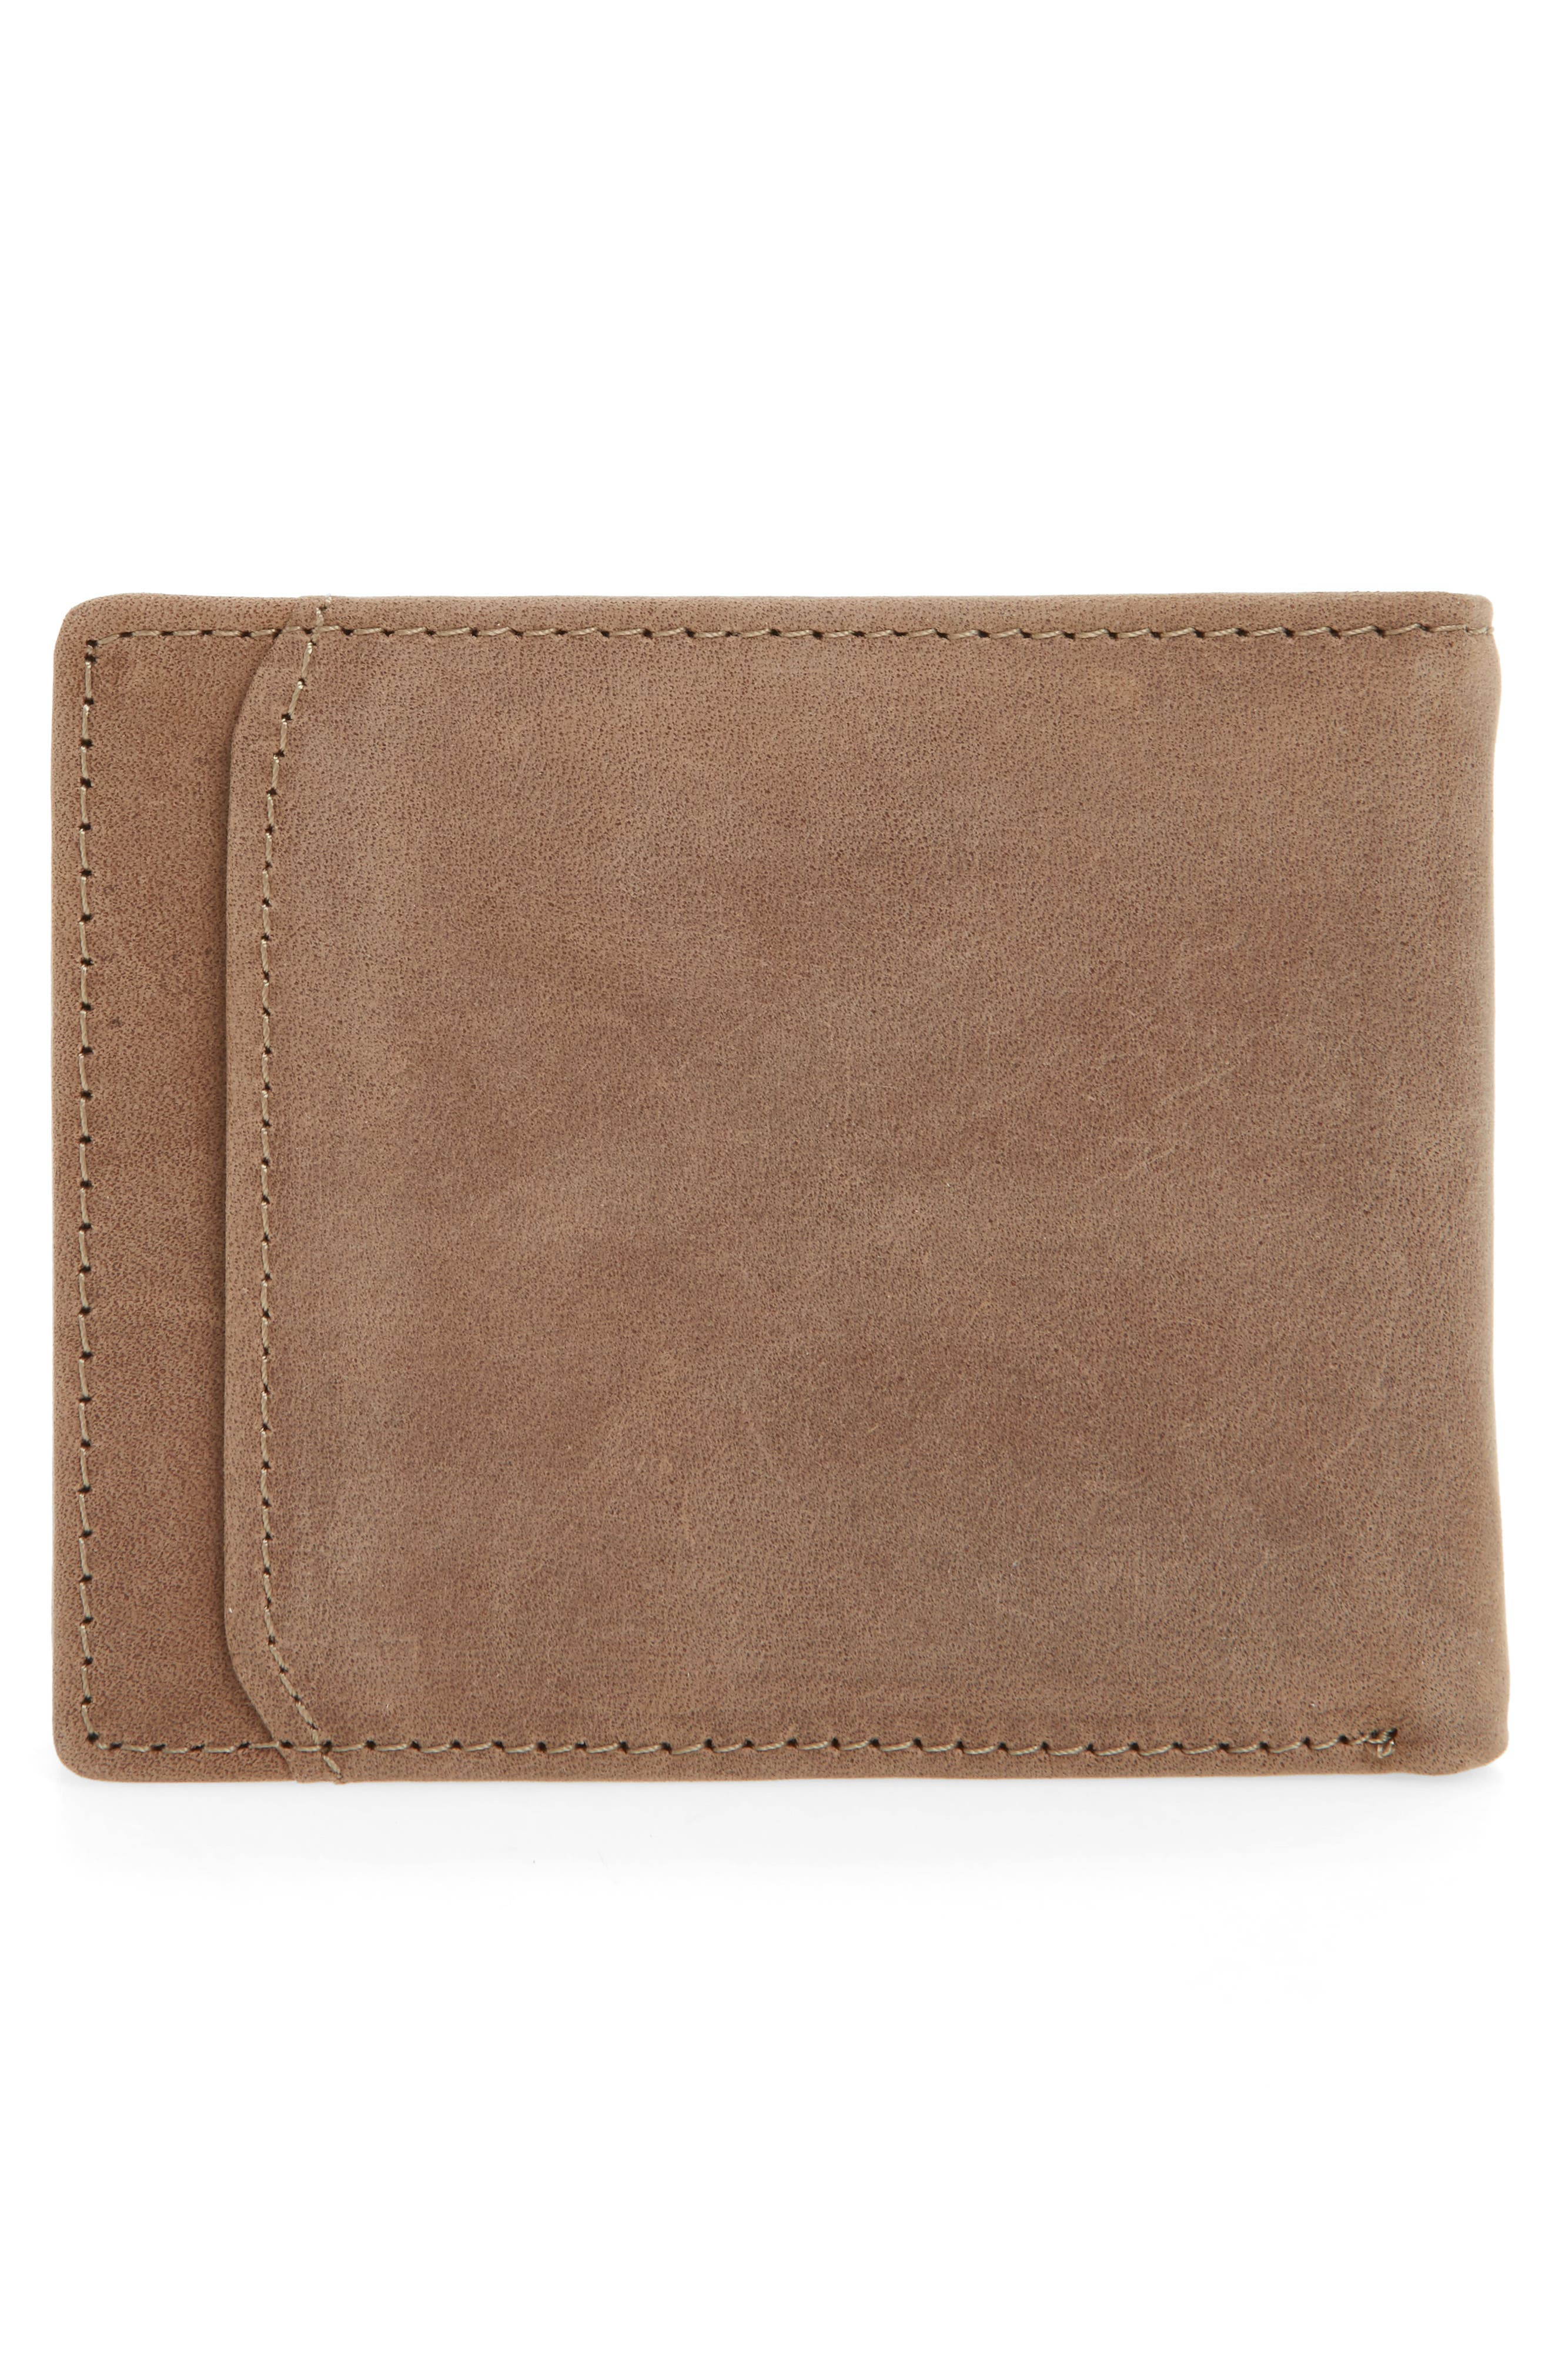 Alternate Image 3  - Nordstrom Men's Shop Upton Leather Wallet